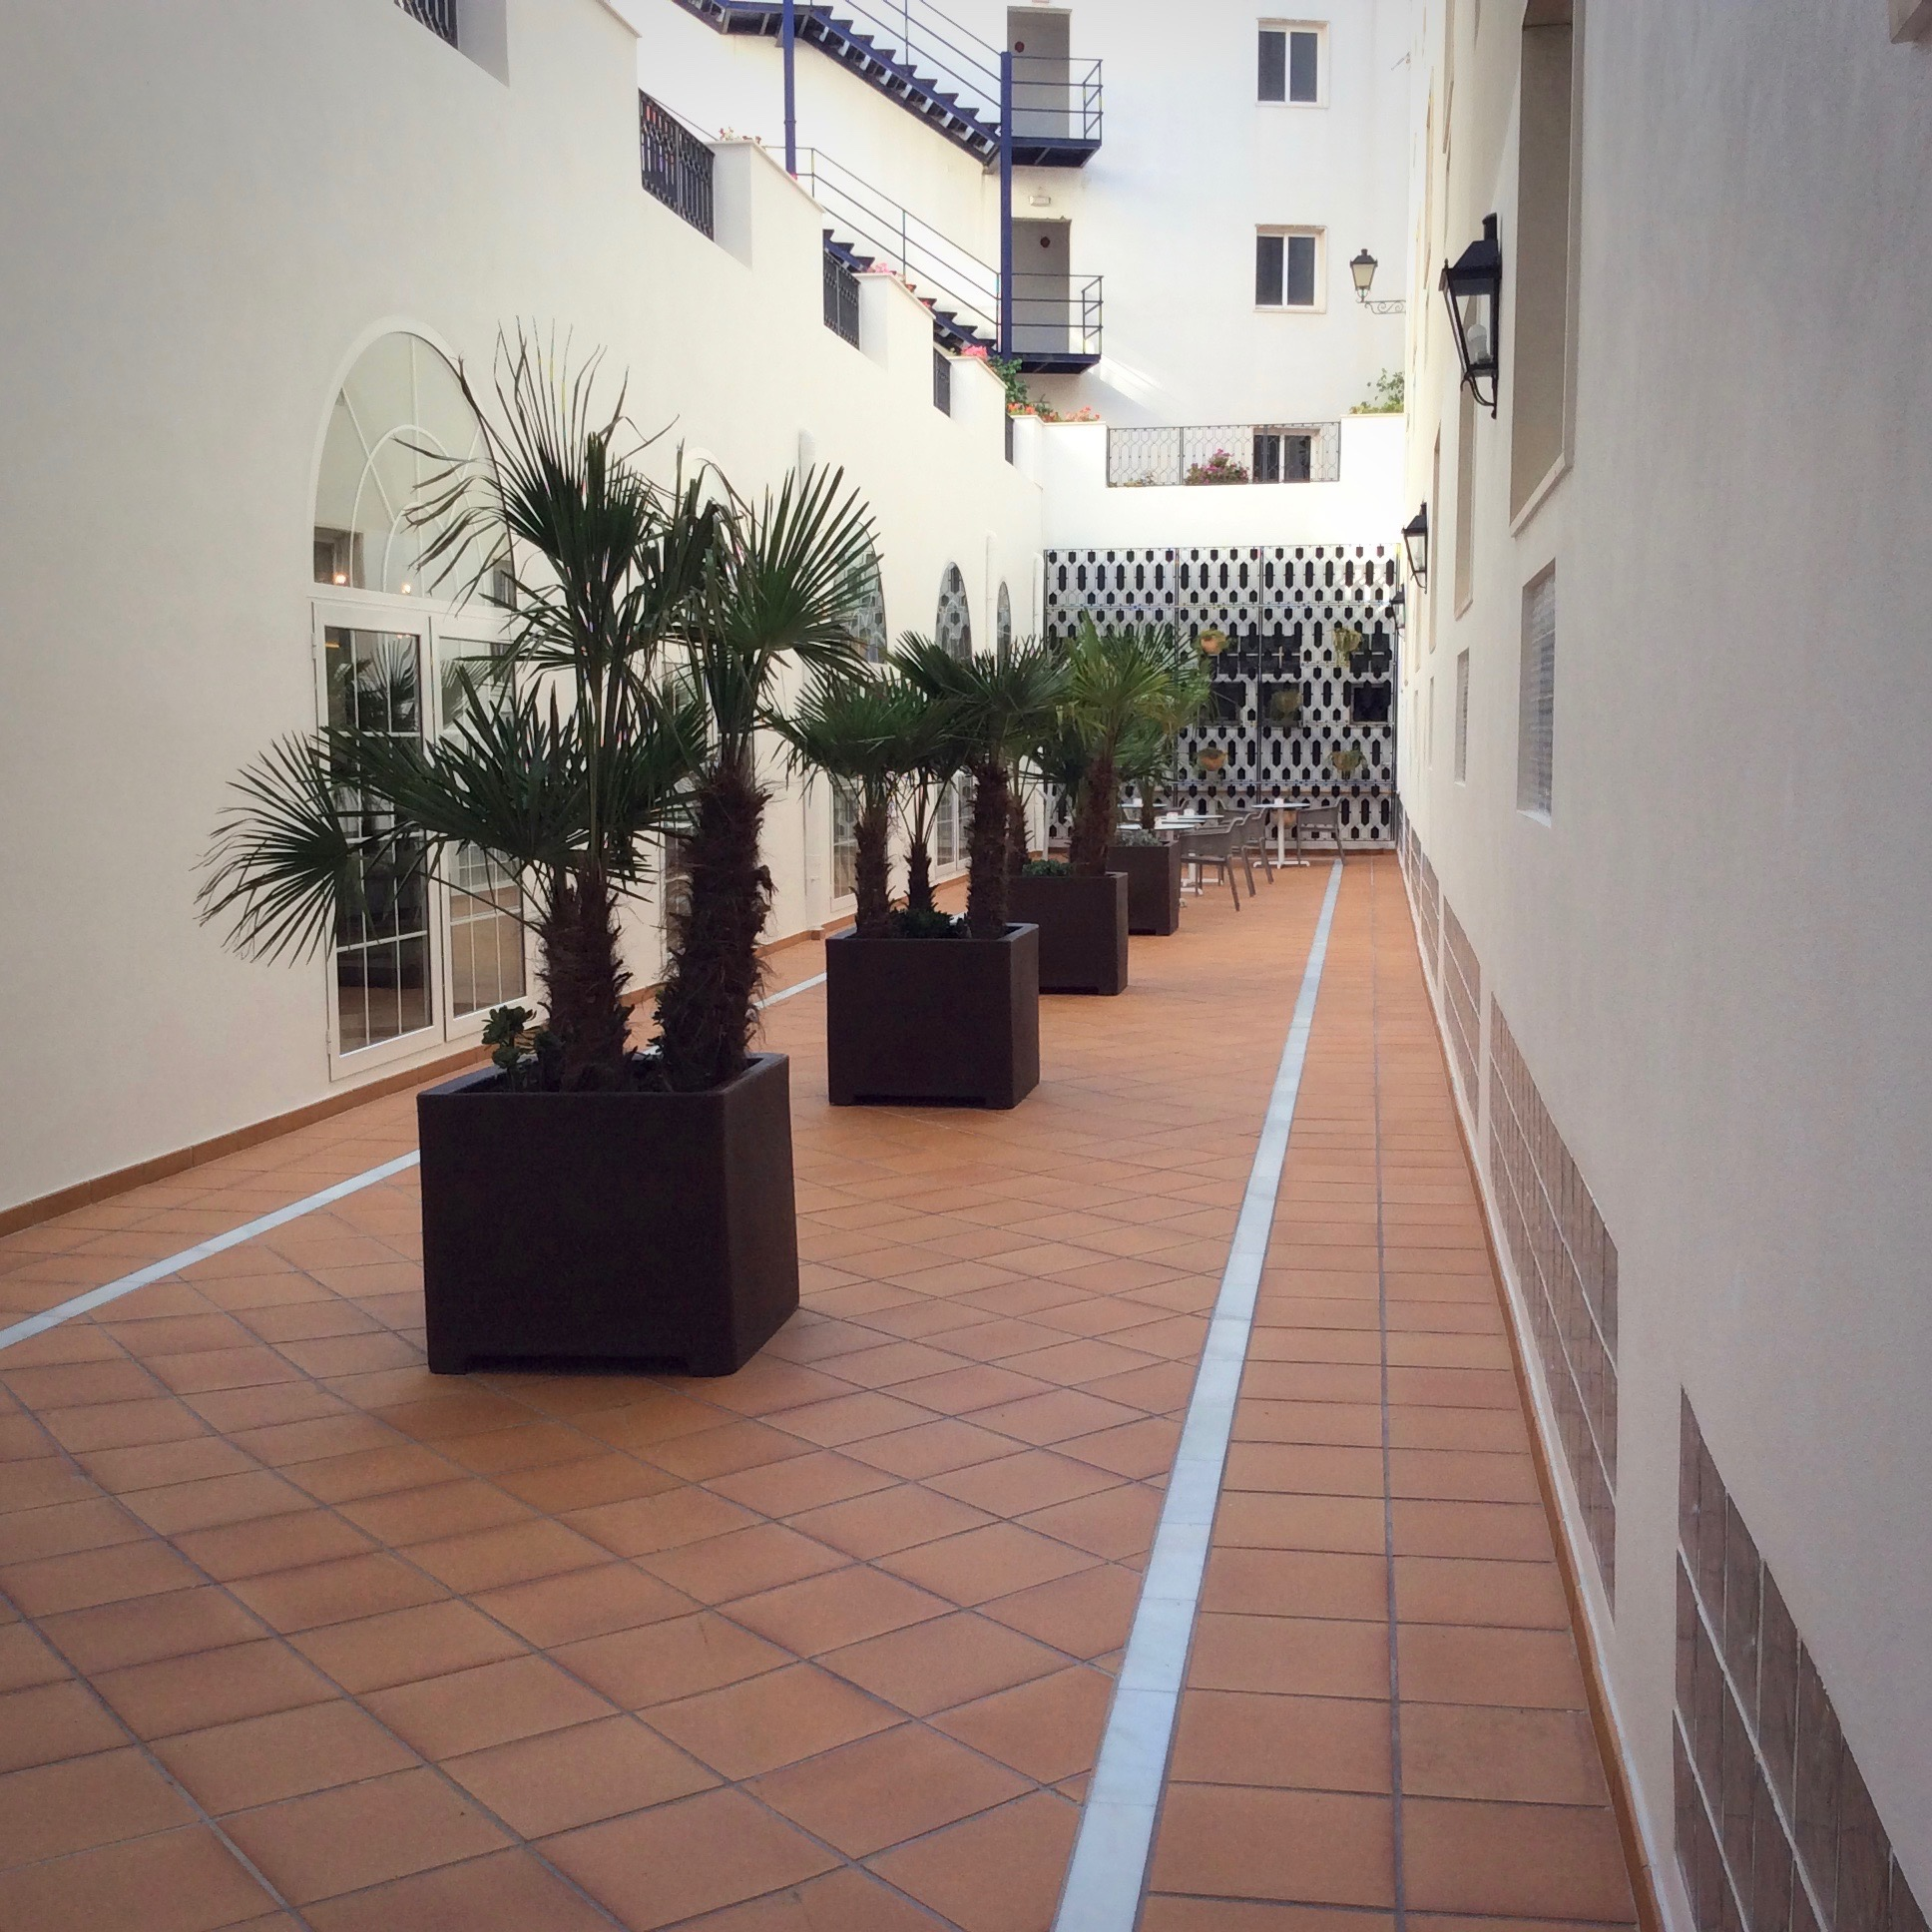 patio-hotel-monte-triana-sevilla